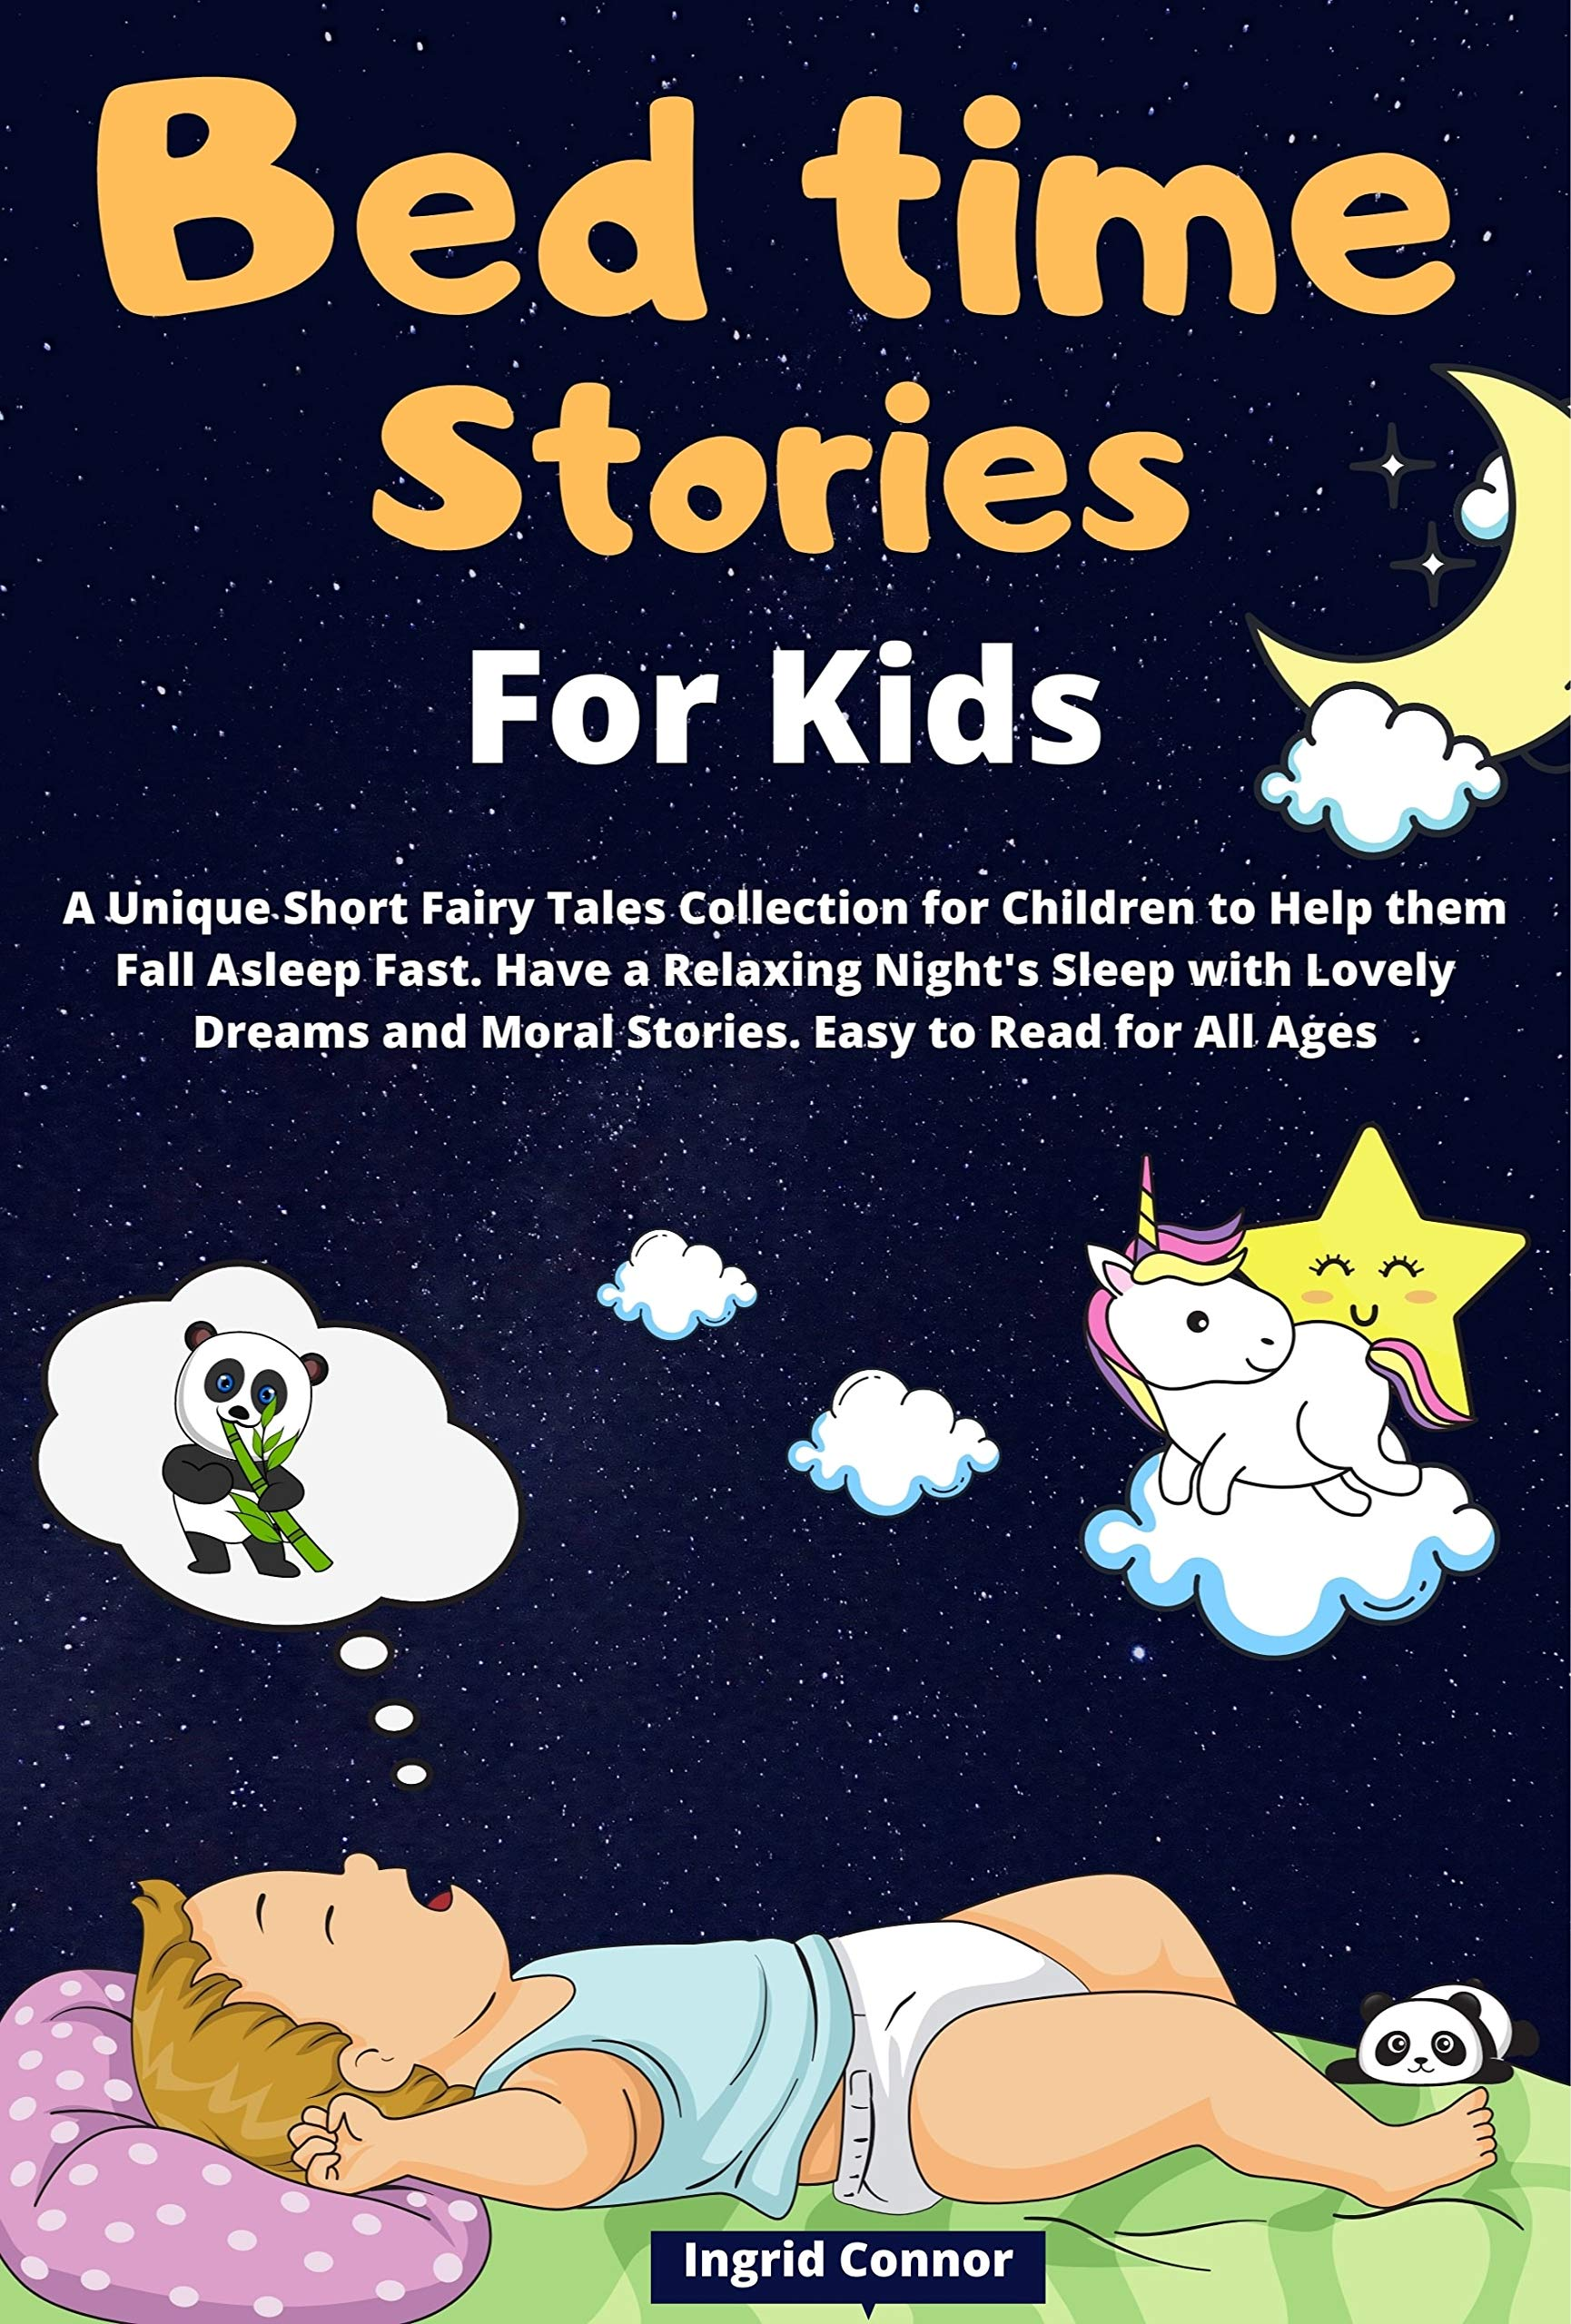 Bedtime Stories for Kids: A Unique Short Fairy Tales Collection for Children to Help them Fall Asleep Fast. Have a Relaxing Night's Sleep with Lovely Dreams ... and Moral Stories.Easy to Read for All Ages